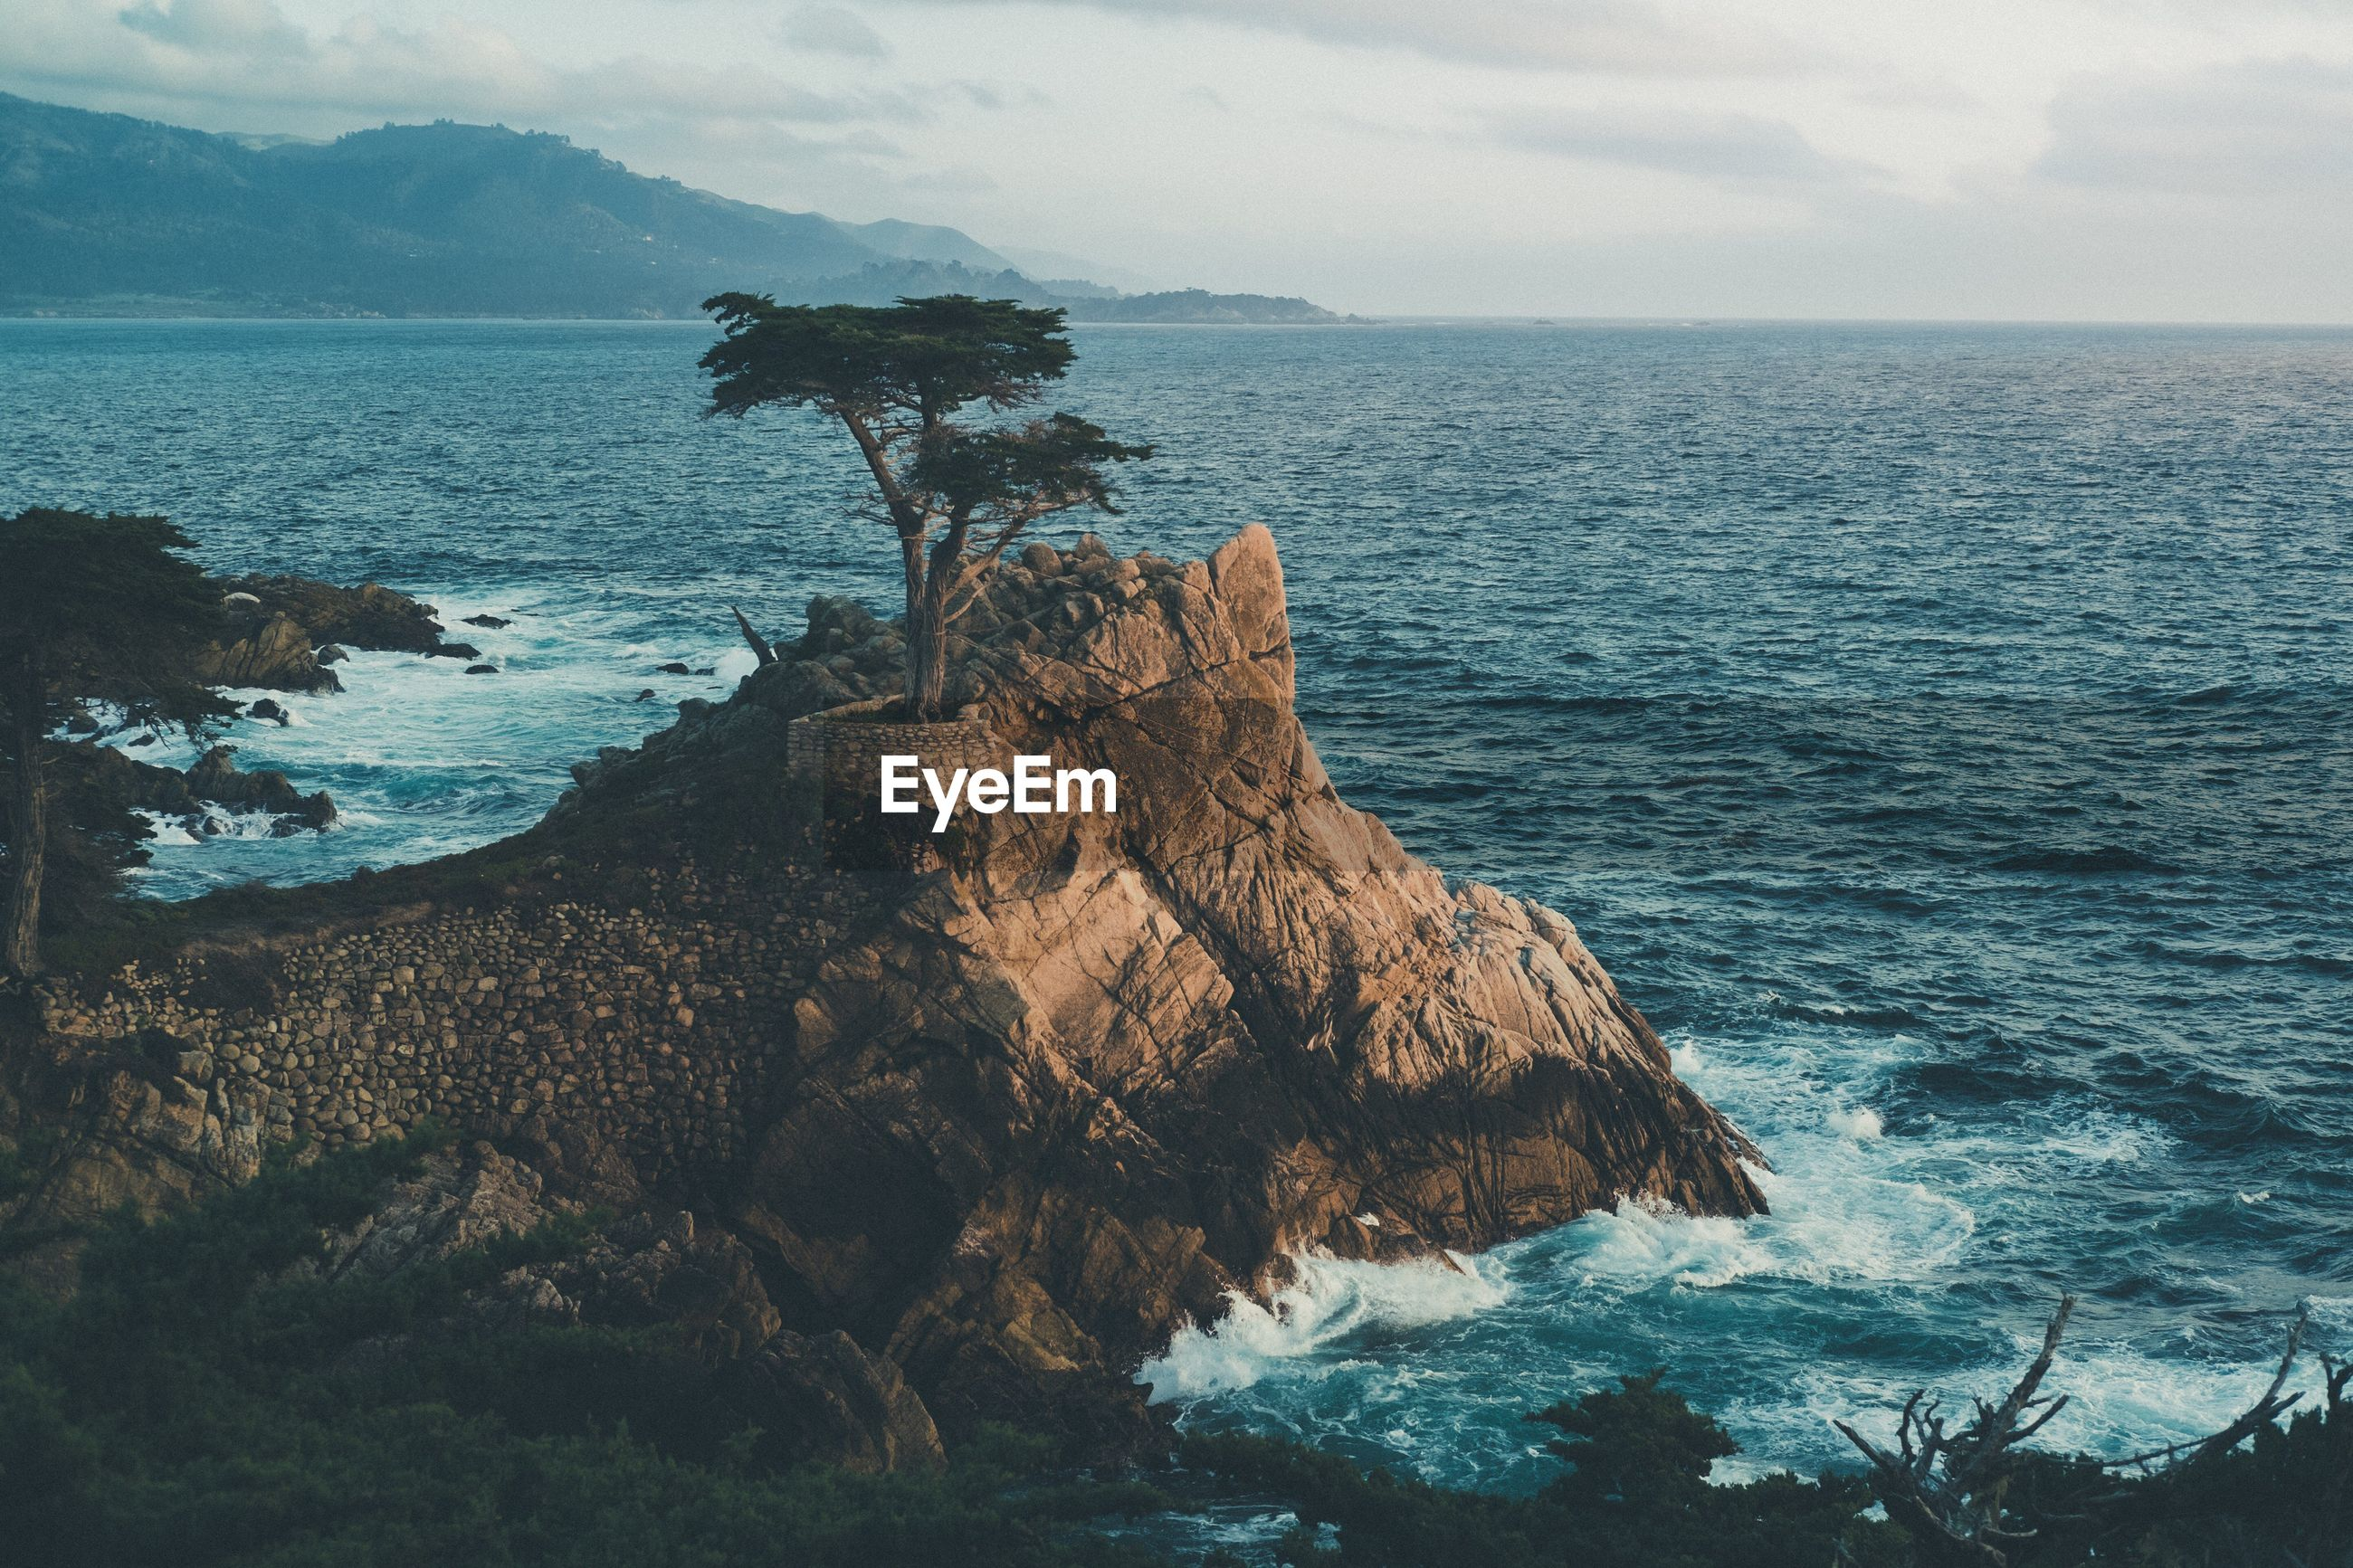 SCENIC VIEW OF SEA BY CLIFF